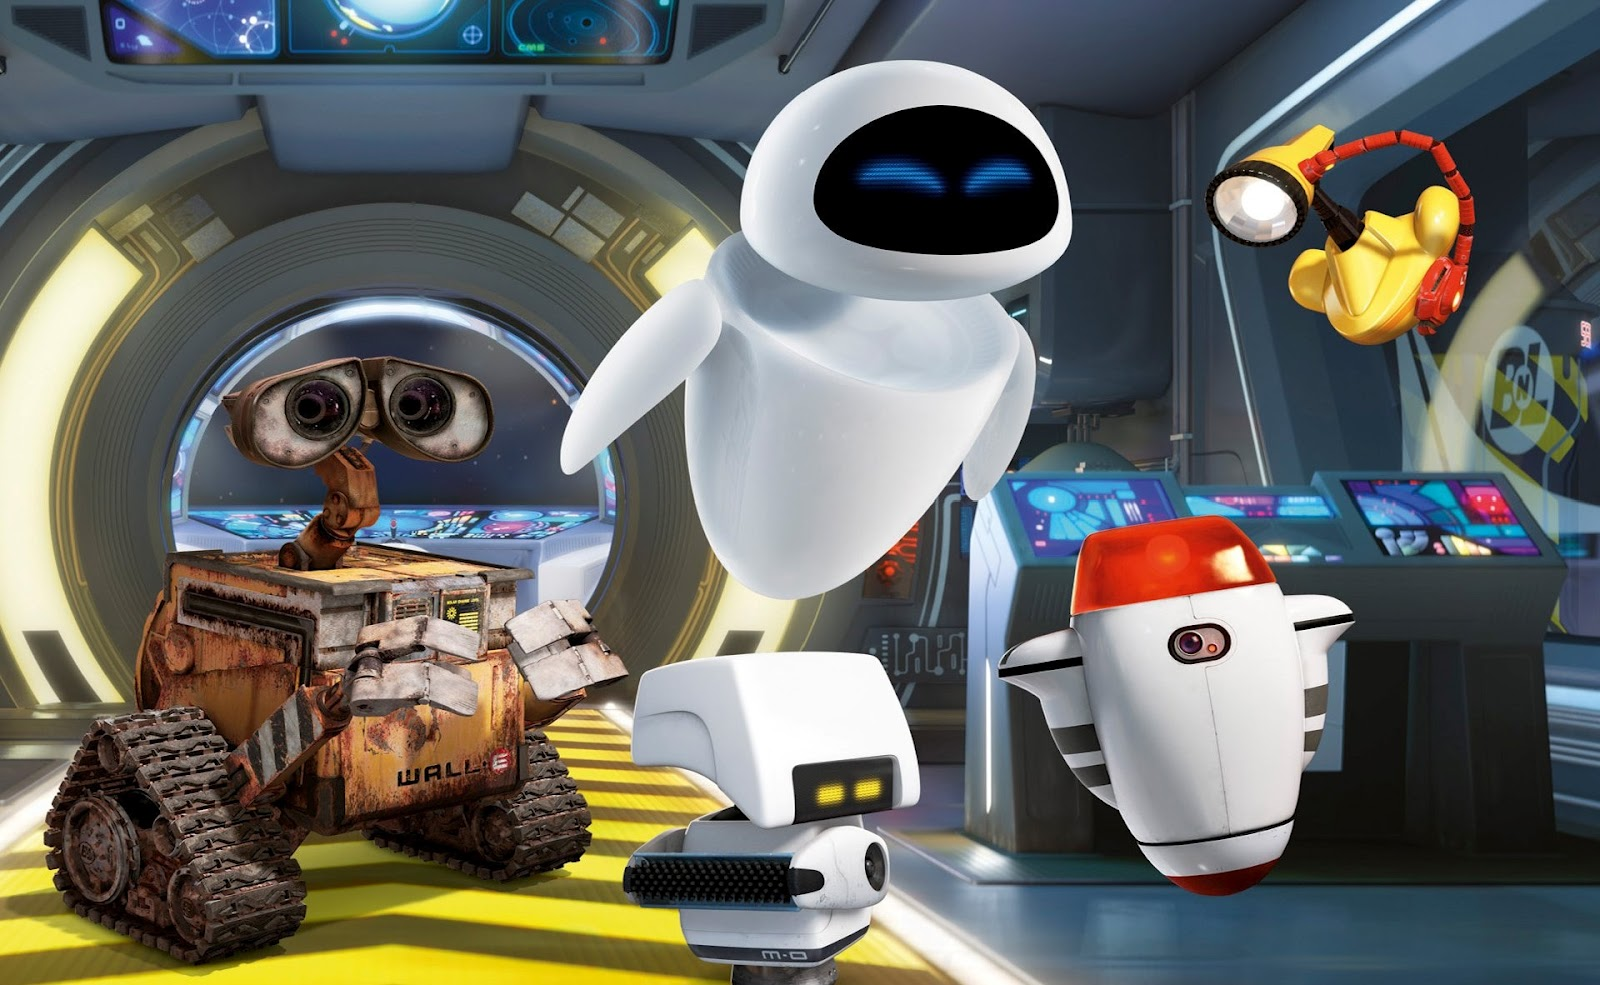 New Years Eve Wallpaper Iphone 6 New Wall E Best Quality Amazing Hd Wallpapers All Hd